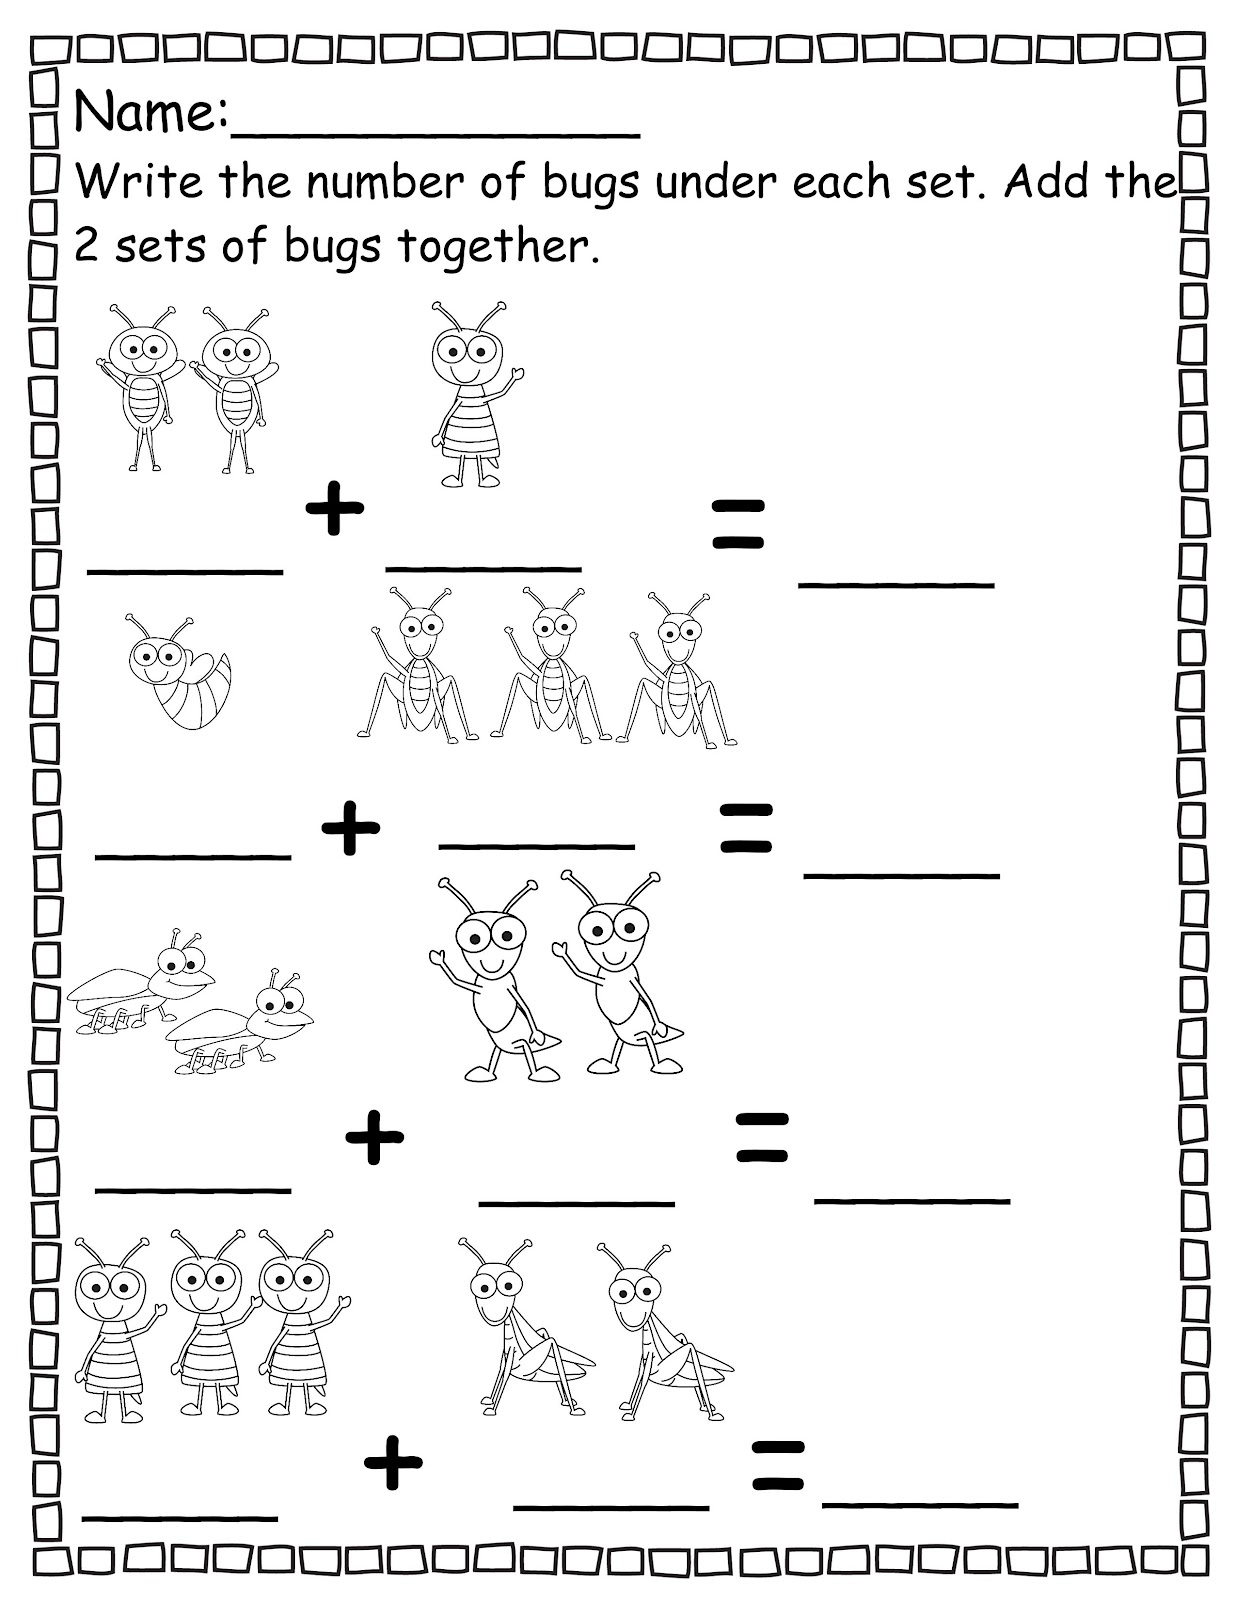 Worksheet Pre K Printables prek coloring sheets eassume pre k math worksheets the crazy classroom free printables